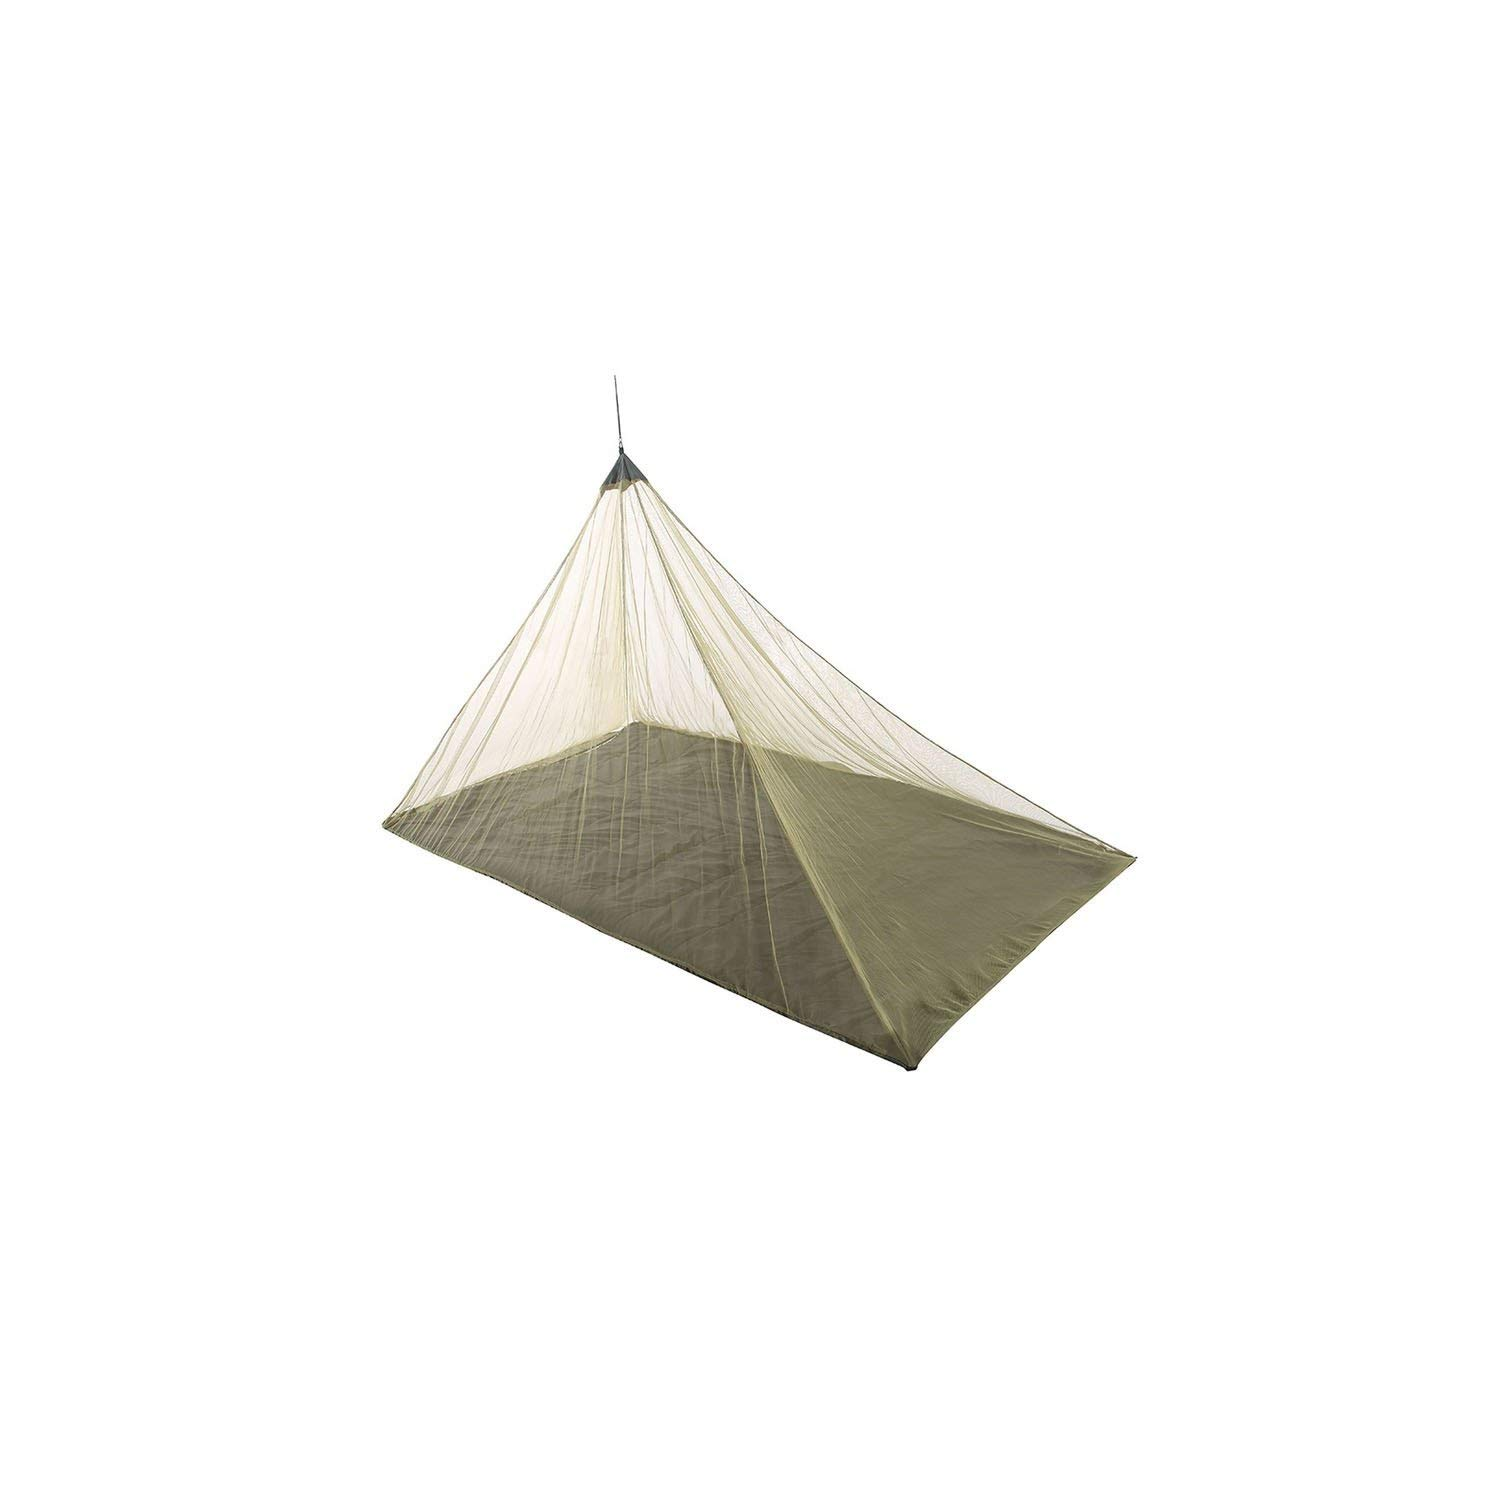 Mosquito Net Perfect Outdoor for Adults and Kids Keep Insect Away Home Textile,Green,220X120X100Cm